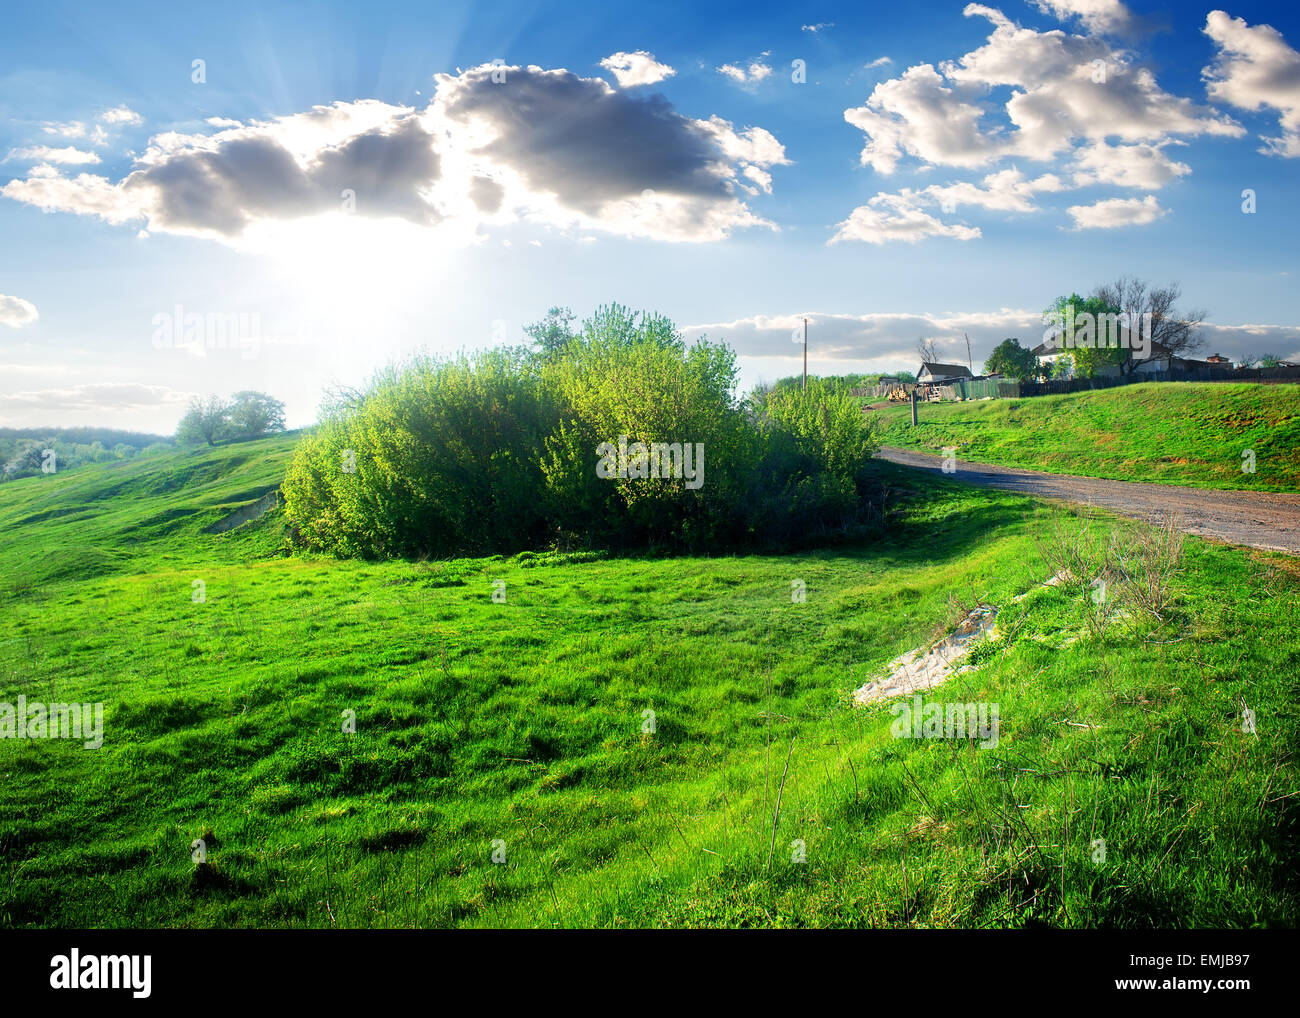 Houses in a small village near green field - Stock Image